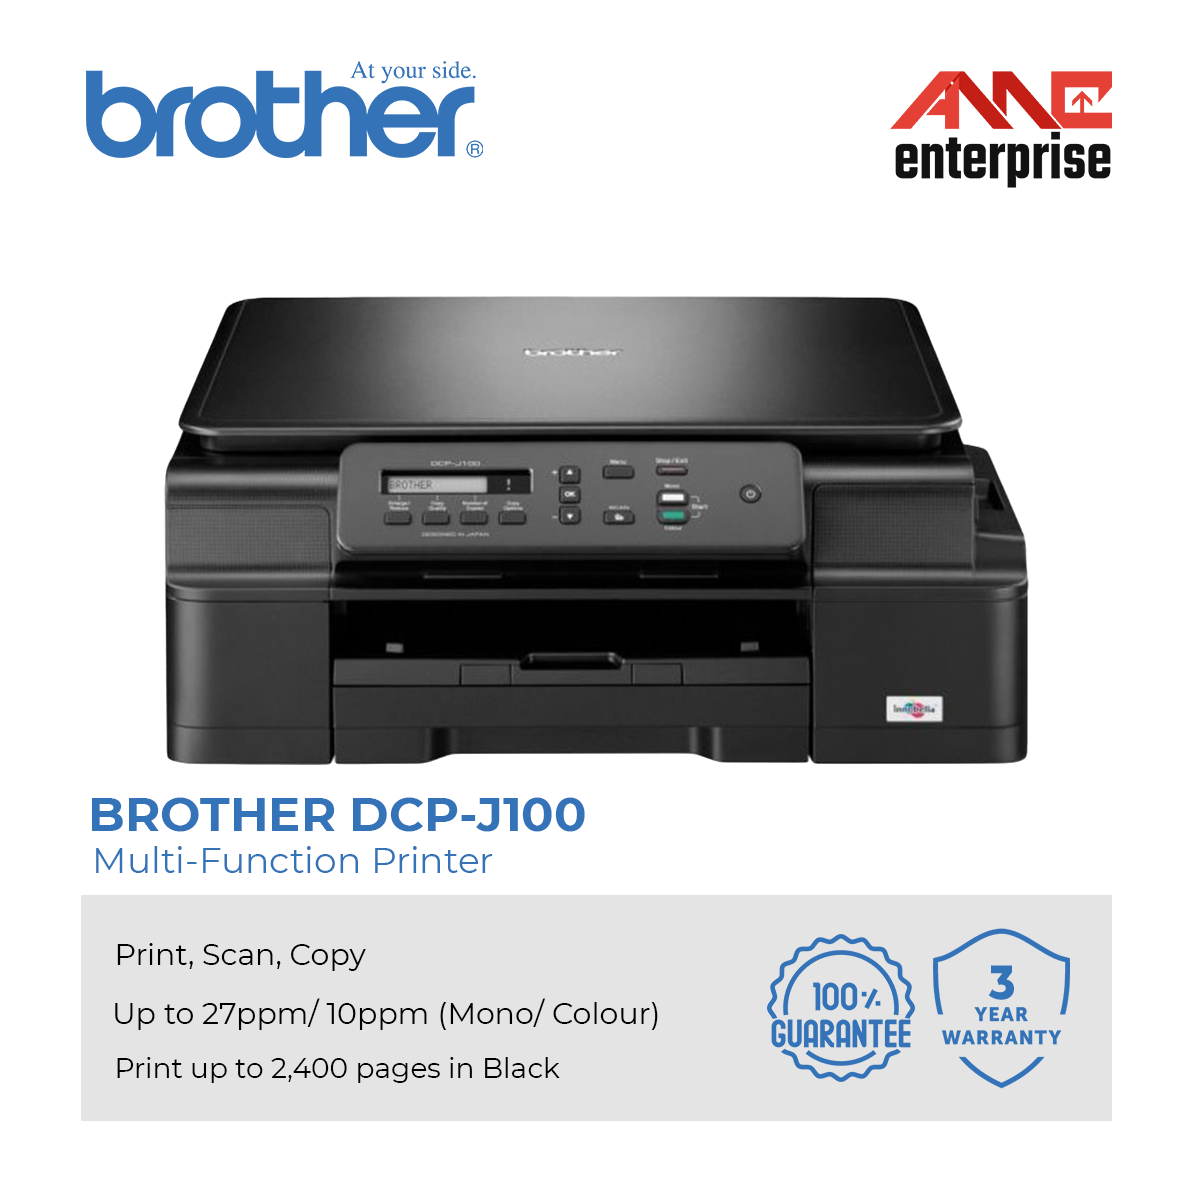 BROTHER DCP-J100 PRINTER (2).png